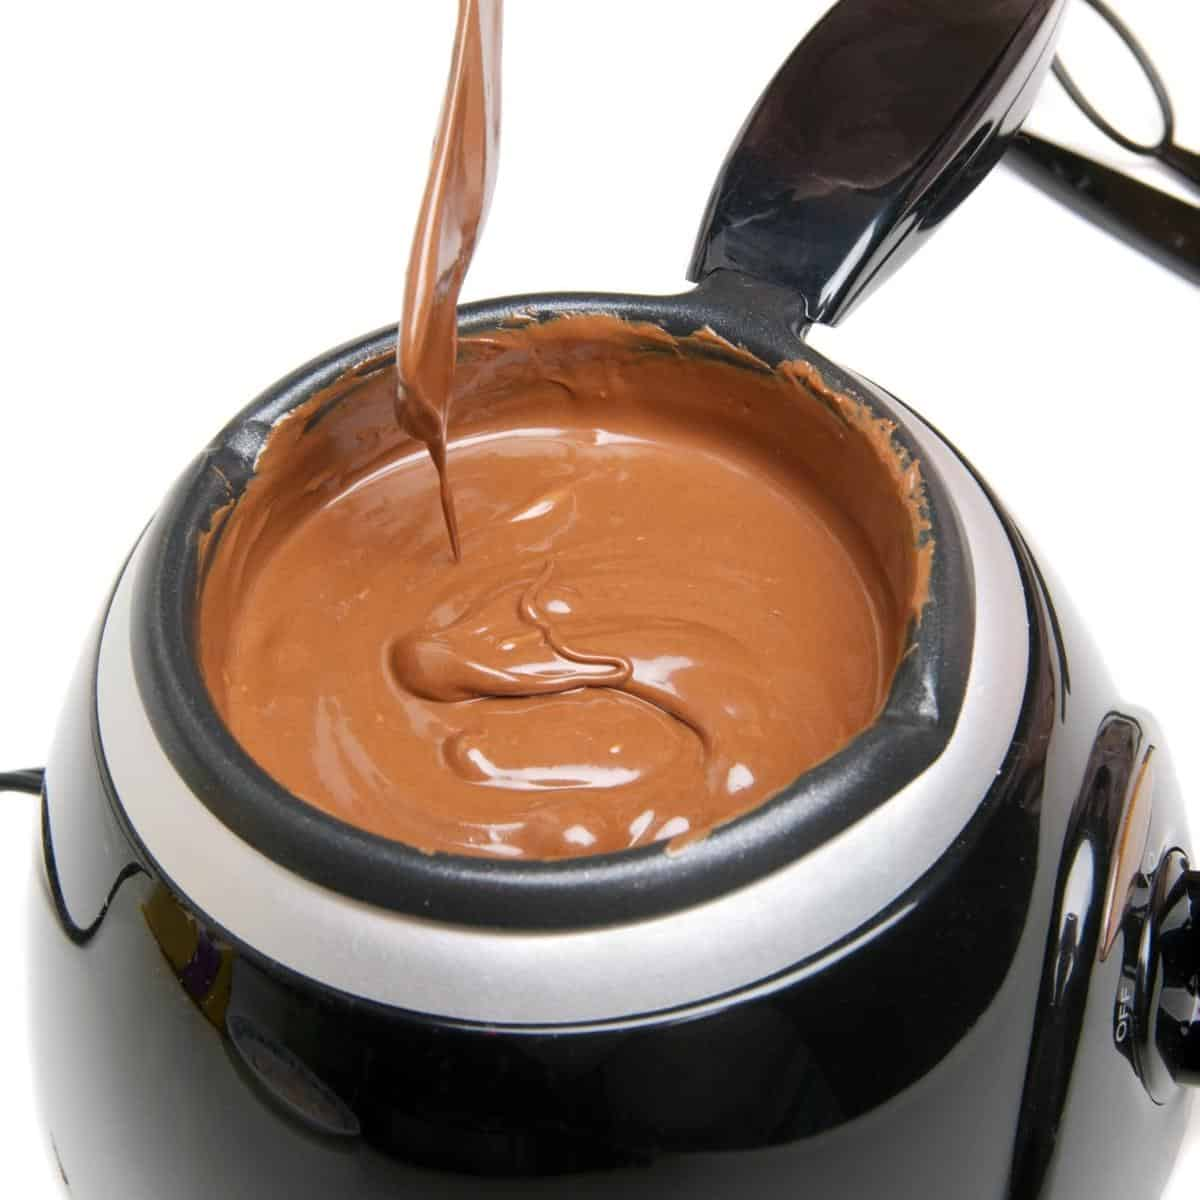 Melting chocolate in a slow cooker